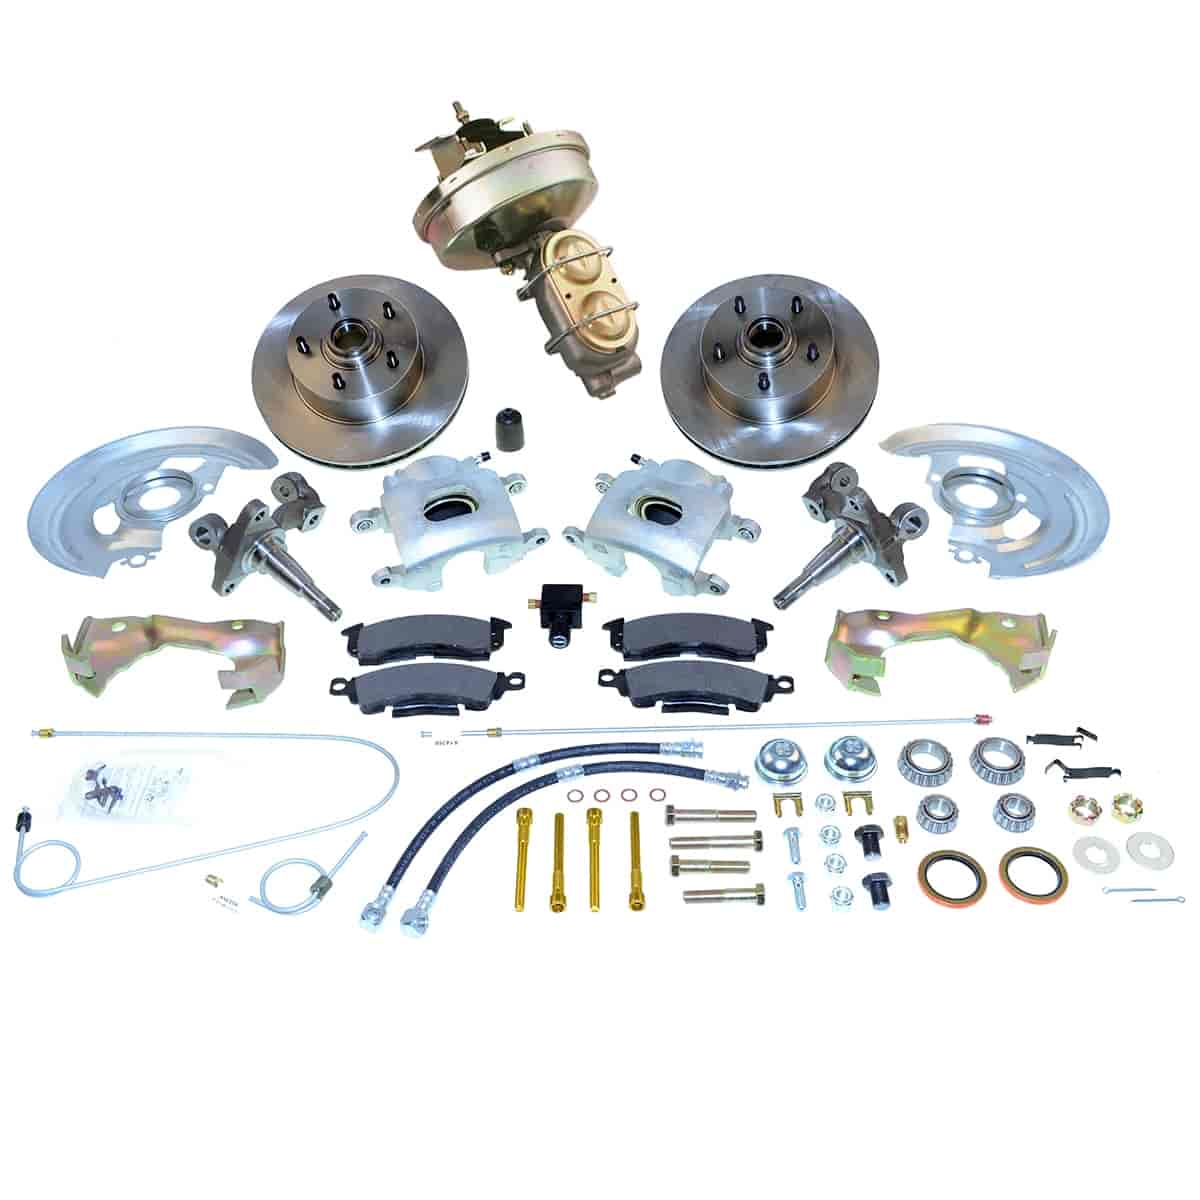 Stainless Steel Brakes A123-1 - Stainless Steel Brakes Single Piston Front Drum-to-Disc Brake Conversion Kit